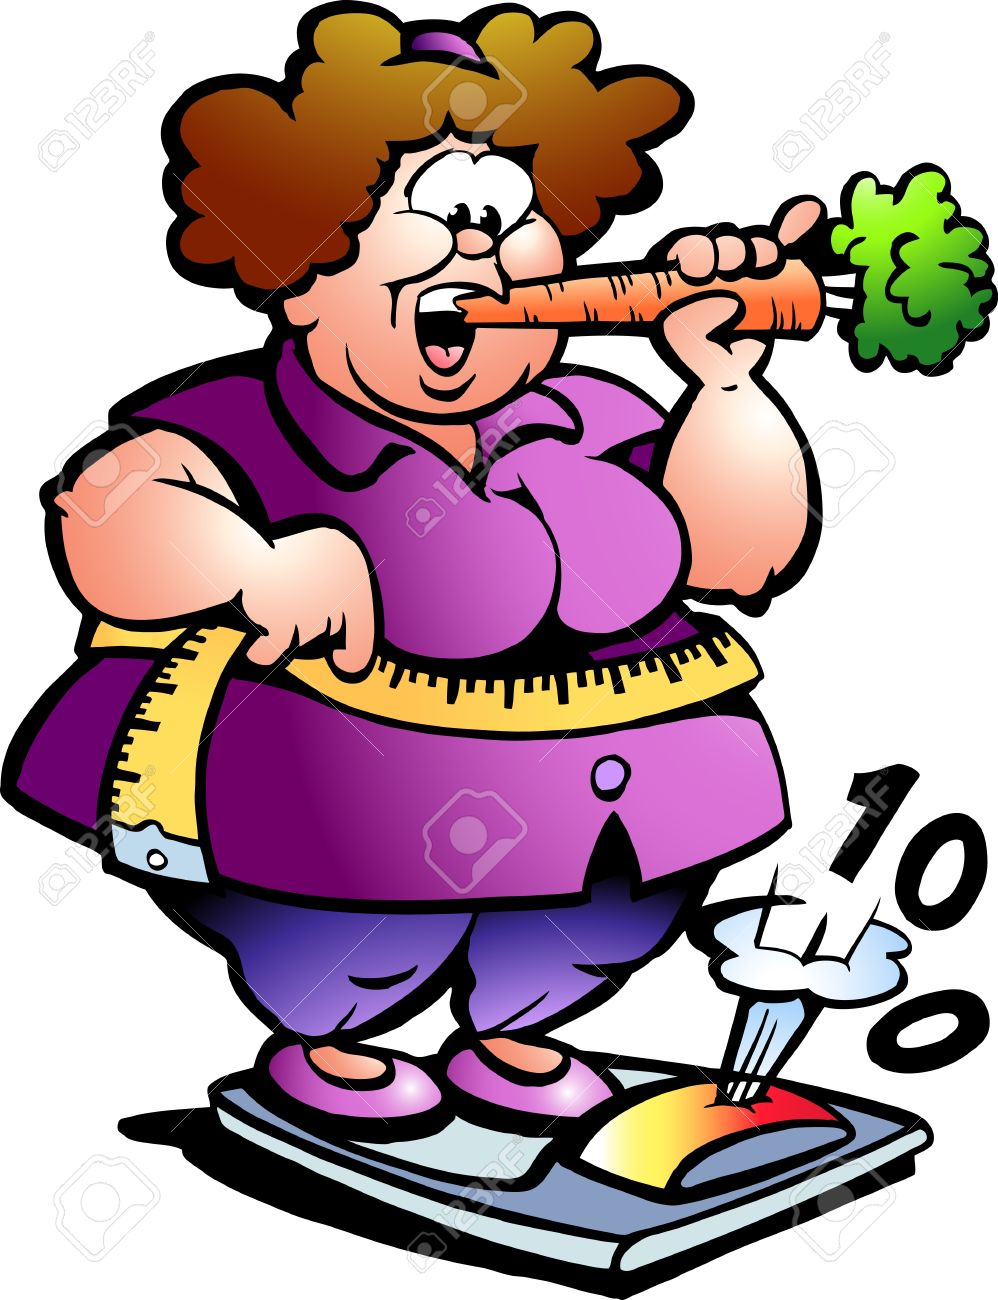 Image result for Hand-drawn Vector illustration of an Fat Lady. Vector illustration of an Fat Lady Stock Images Hand-drawn Vector illustration of an Fat Lady. Vector illustration of an Fat Lady